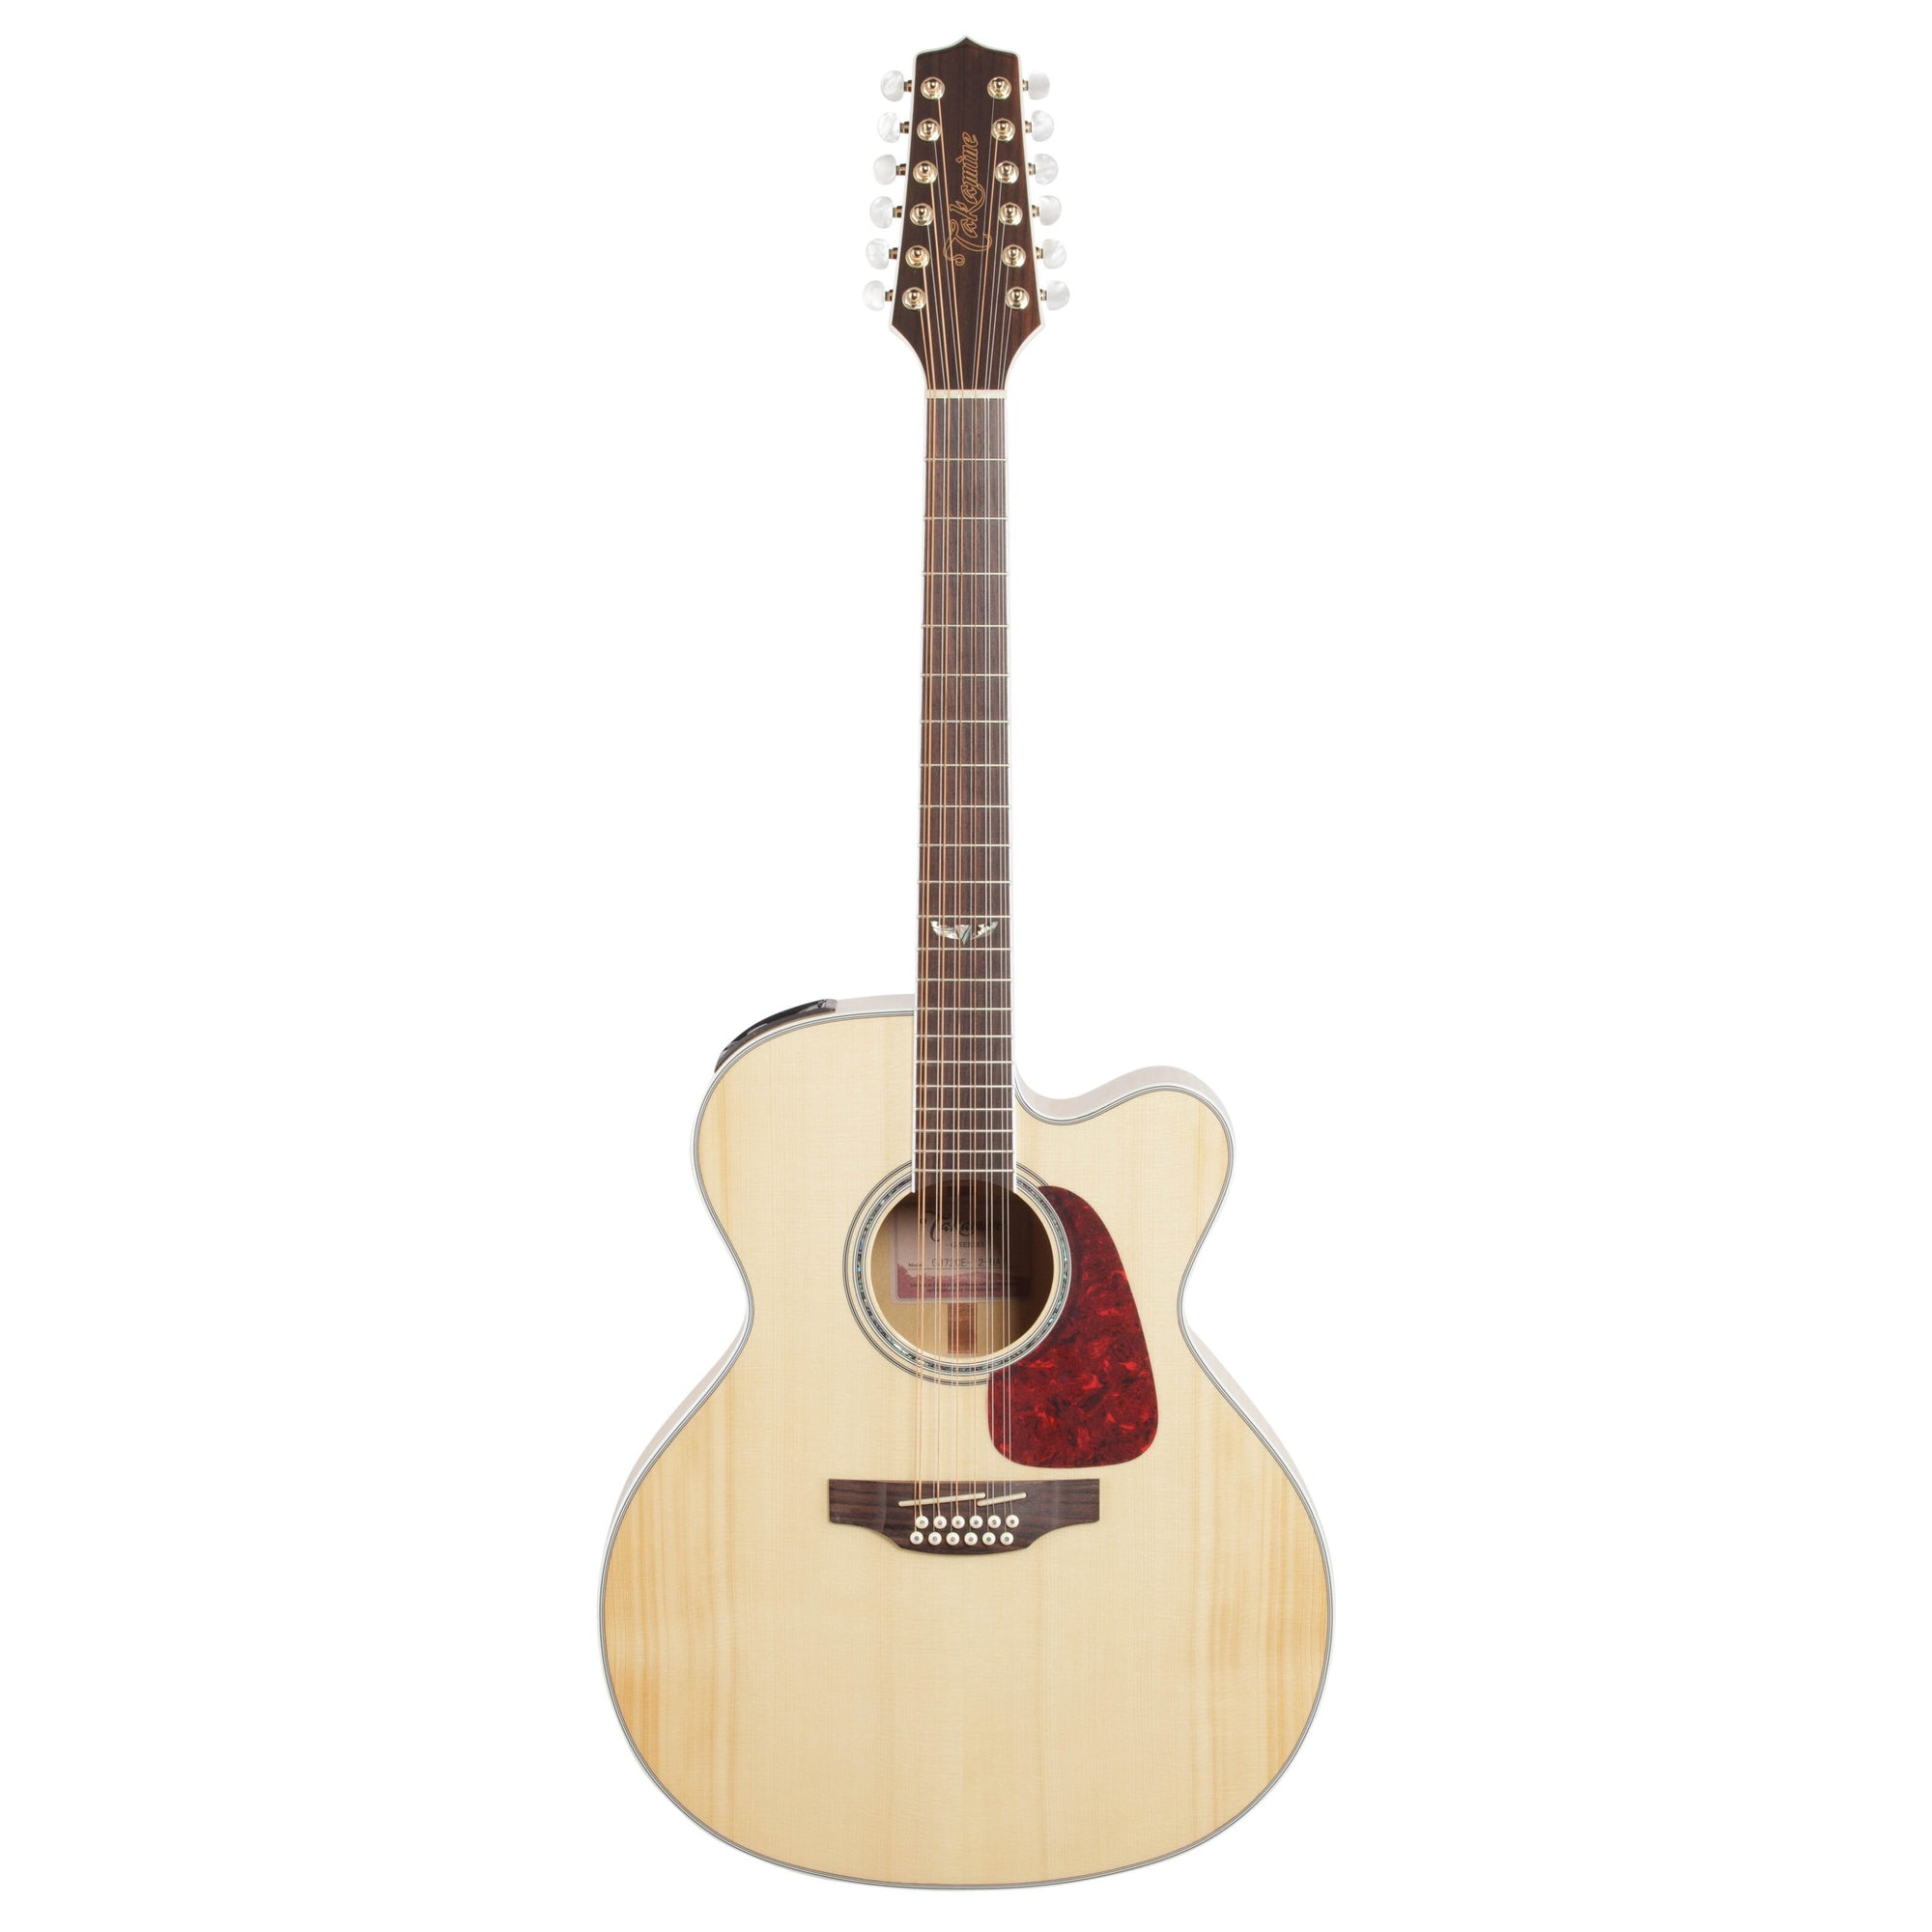 Takamine GJ72CE Jumbo Cutaway Acoustic-Electric Guitar, 12-String, Natural